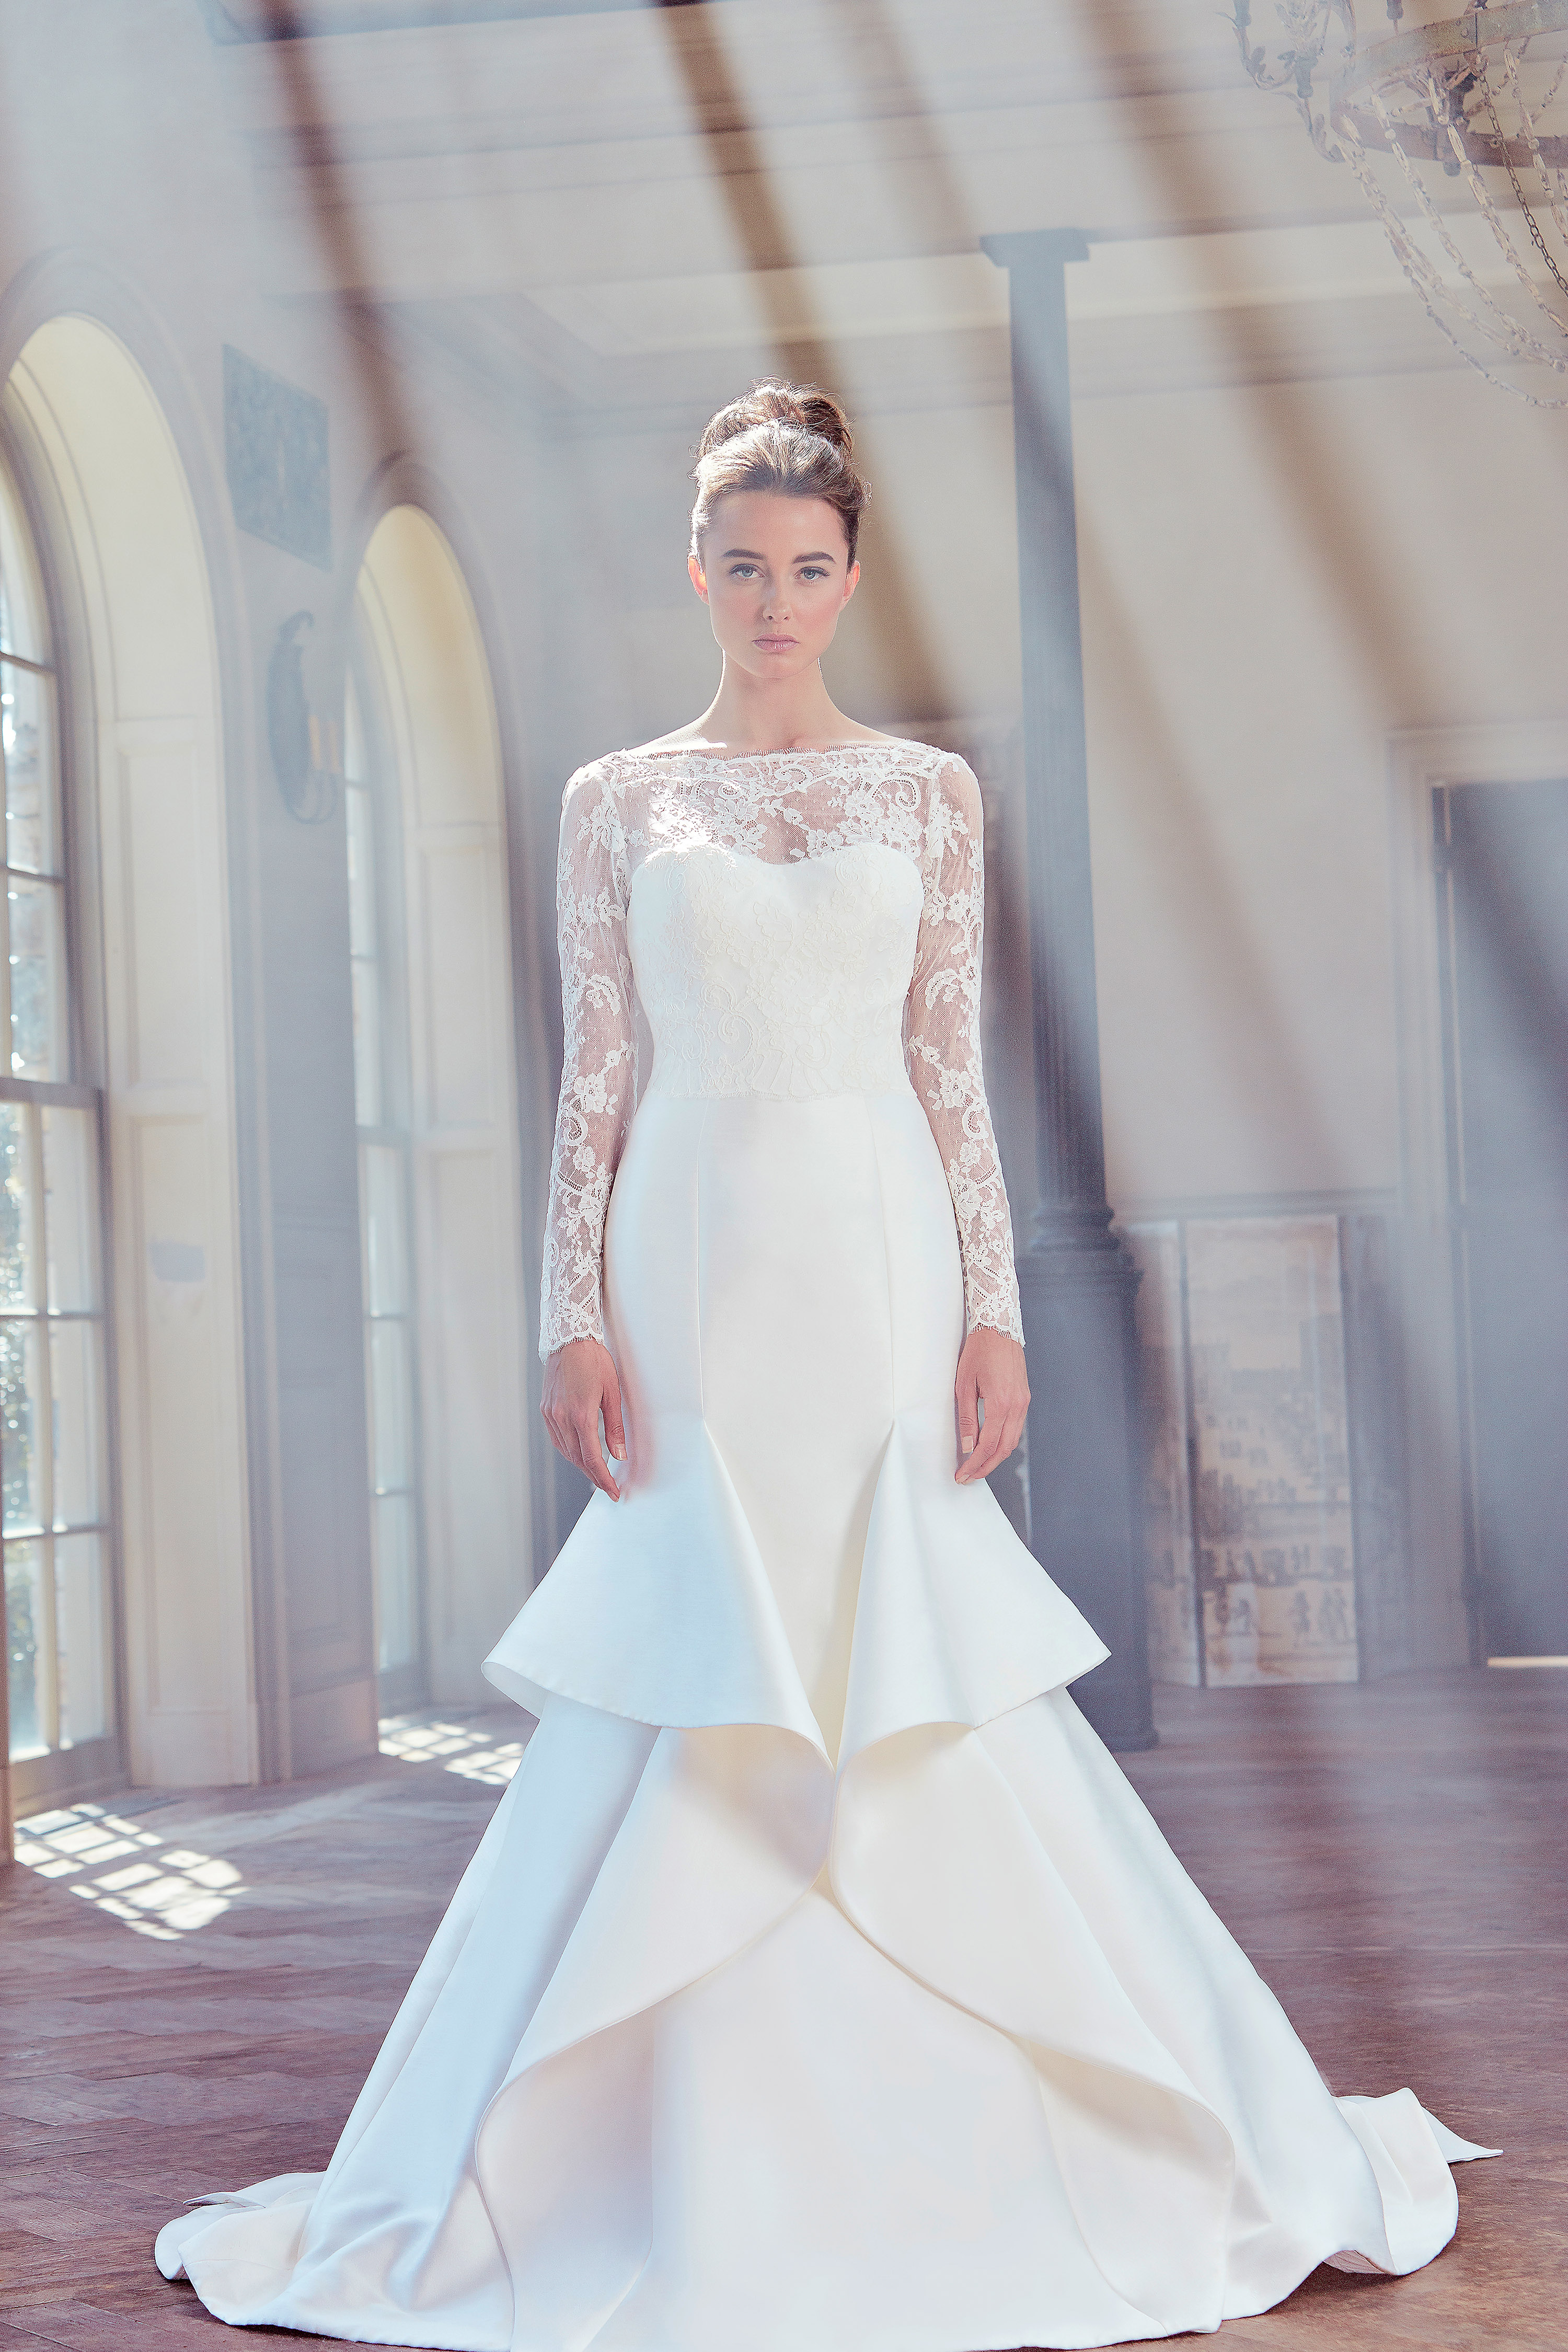 sareh nouri wedding dress spring 2019 ruffles a-line long sleeves illusion